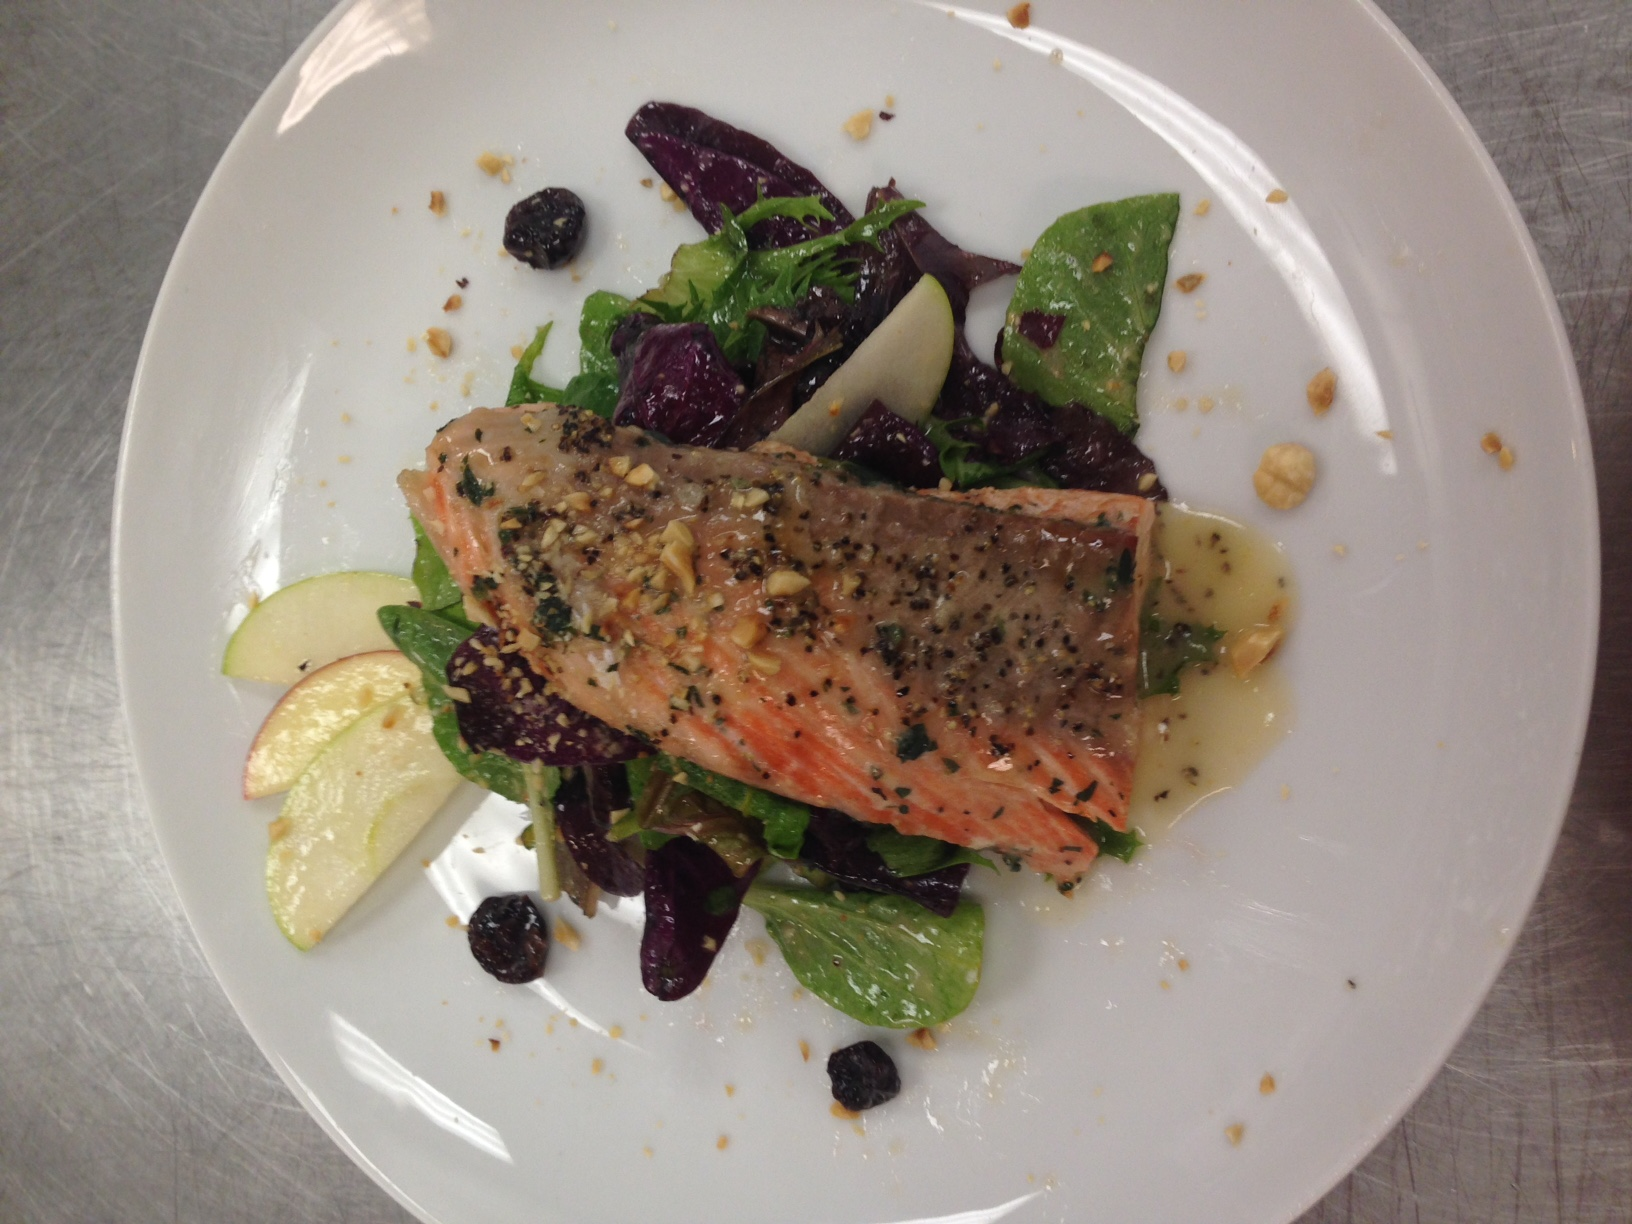 Smoked salmon with a fresh greens and toasted hazelnut and cherry salad-American Regional